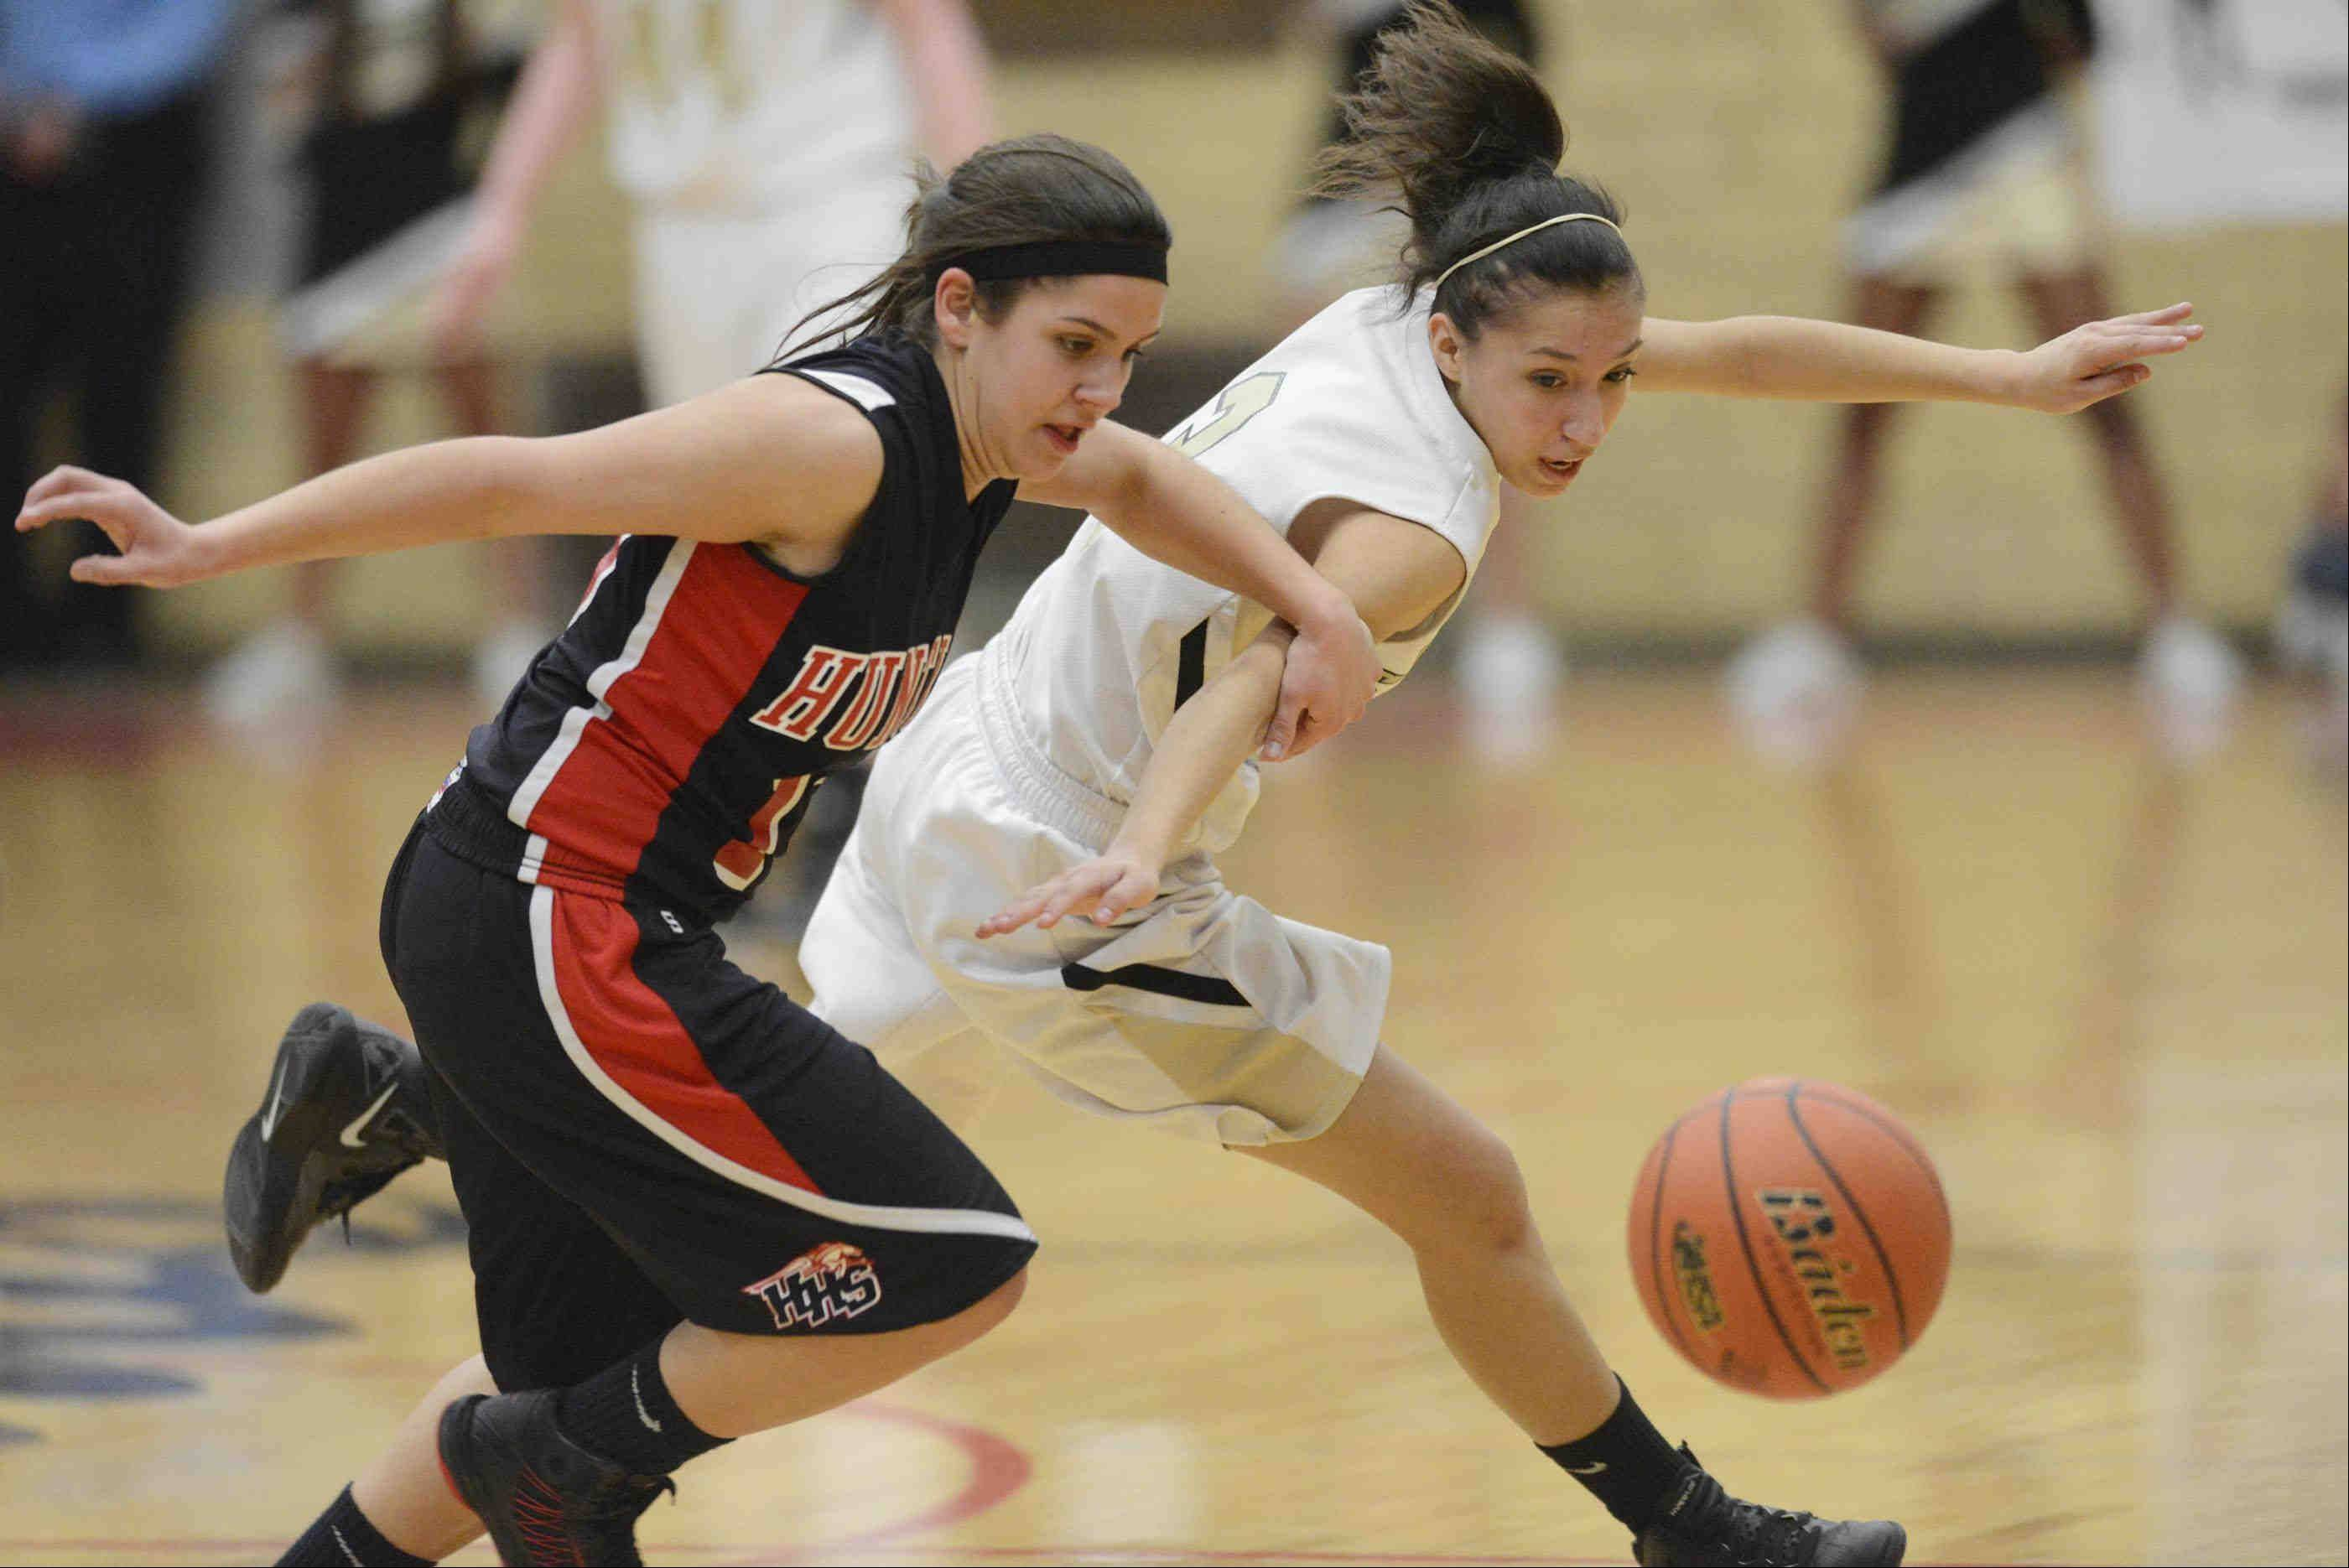 Streamwood's Kimberly Jimenez and Huntley's Kayla Barreto scramble for the ball in the Class 4A Rockford East sectional championship Thursday.